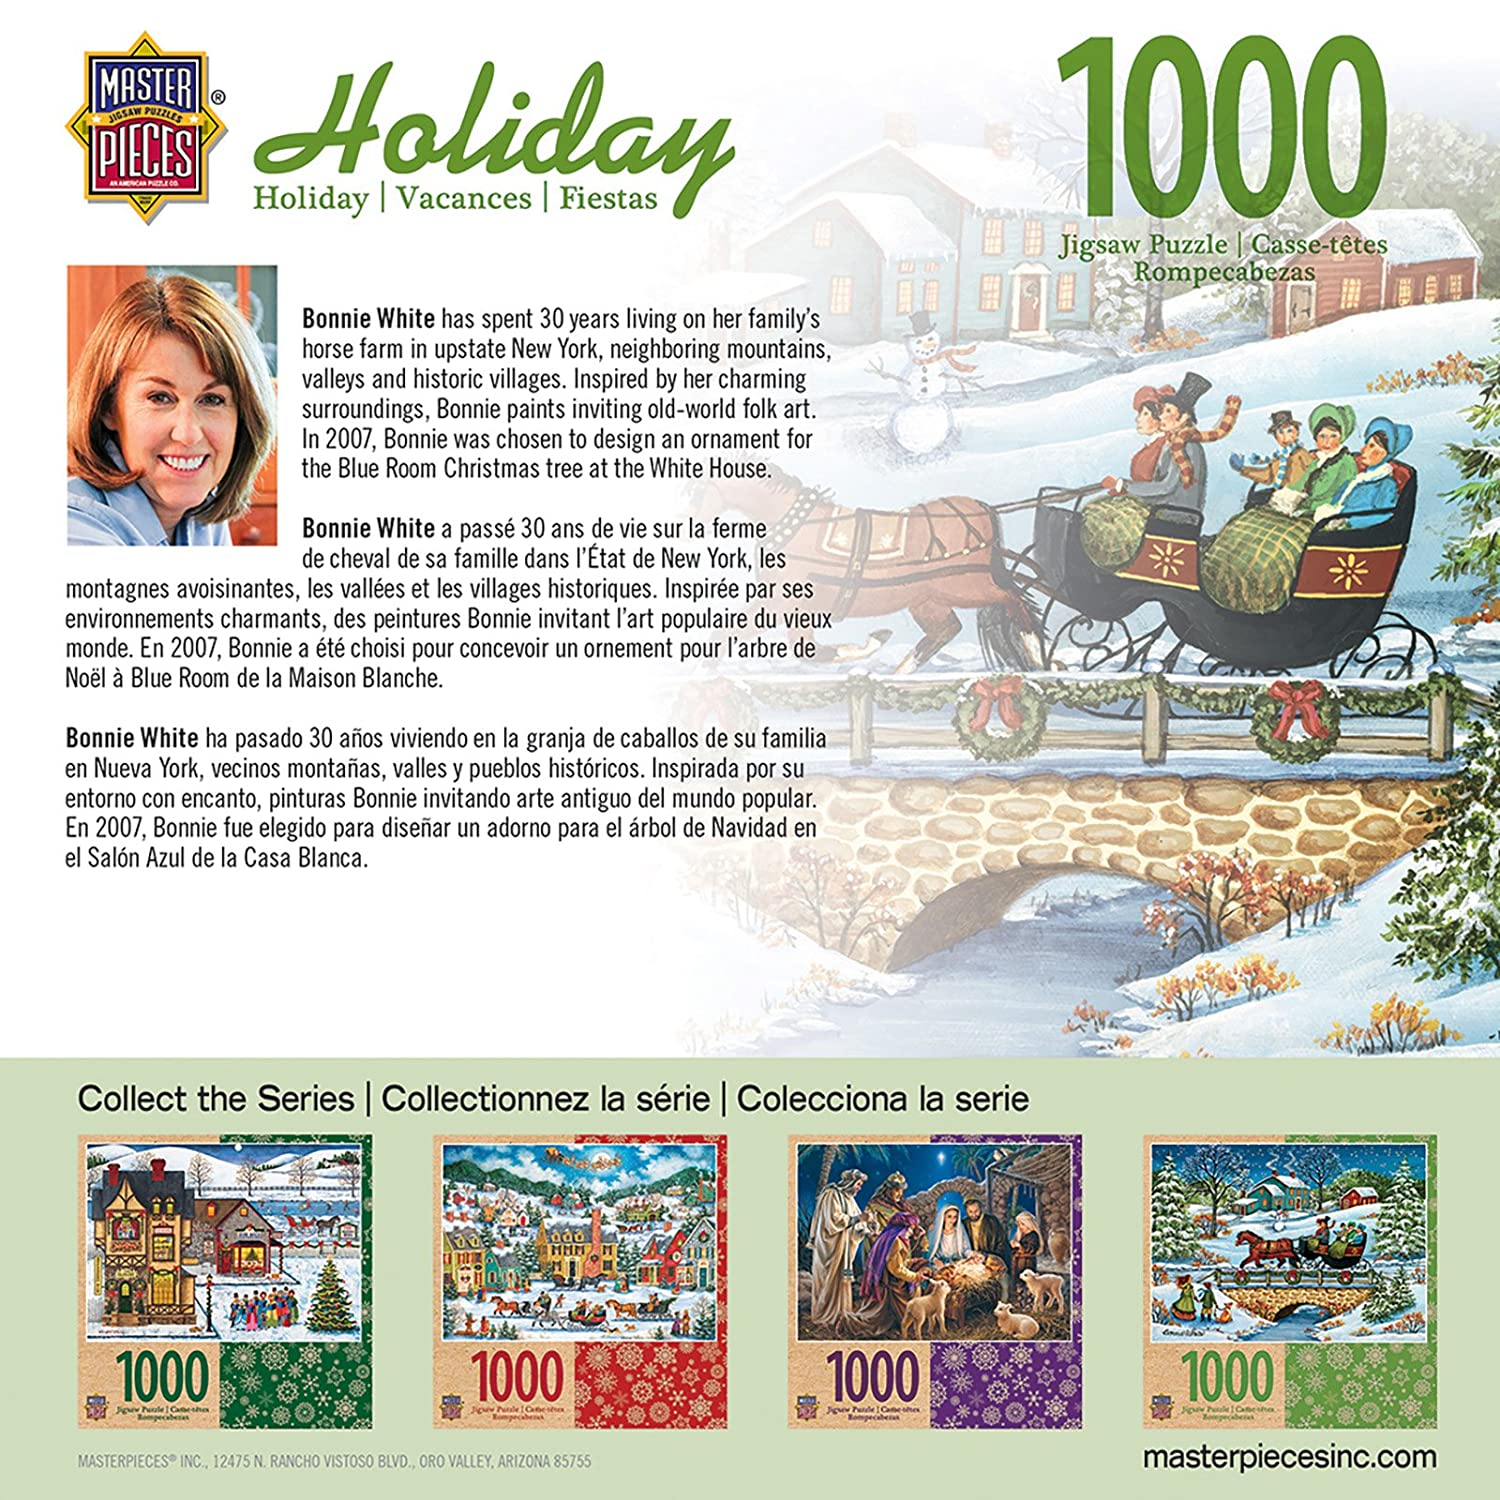 Amazon.com: MasterPieces Holiday Over The River 1000 Piece Puzzle: Toys & Games